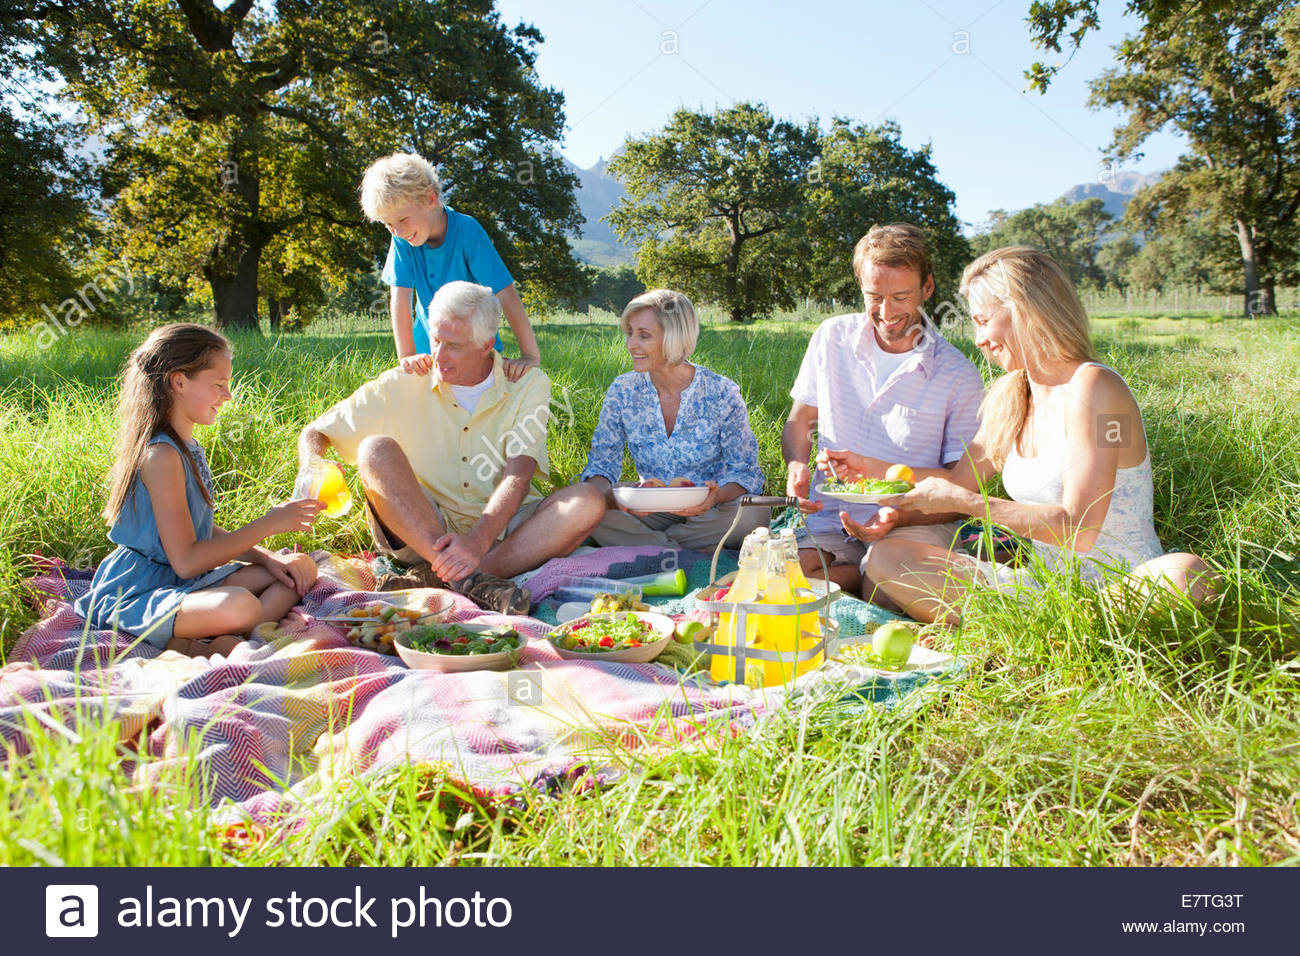 Multi-generation family having picnic in rural field - Stock Image